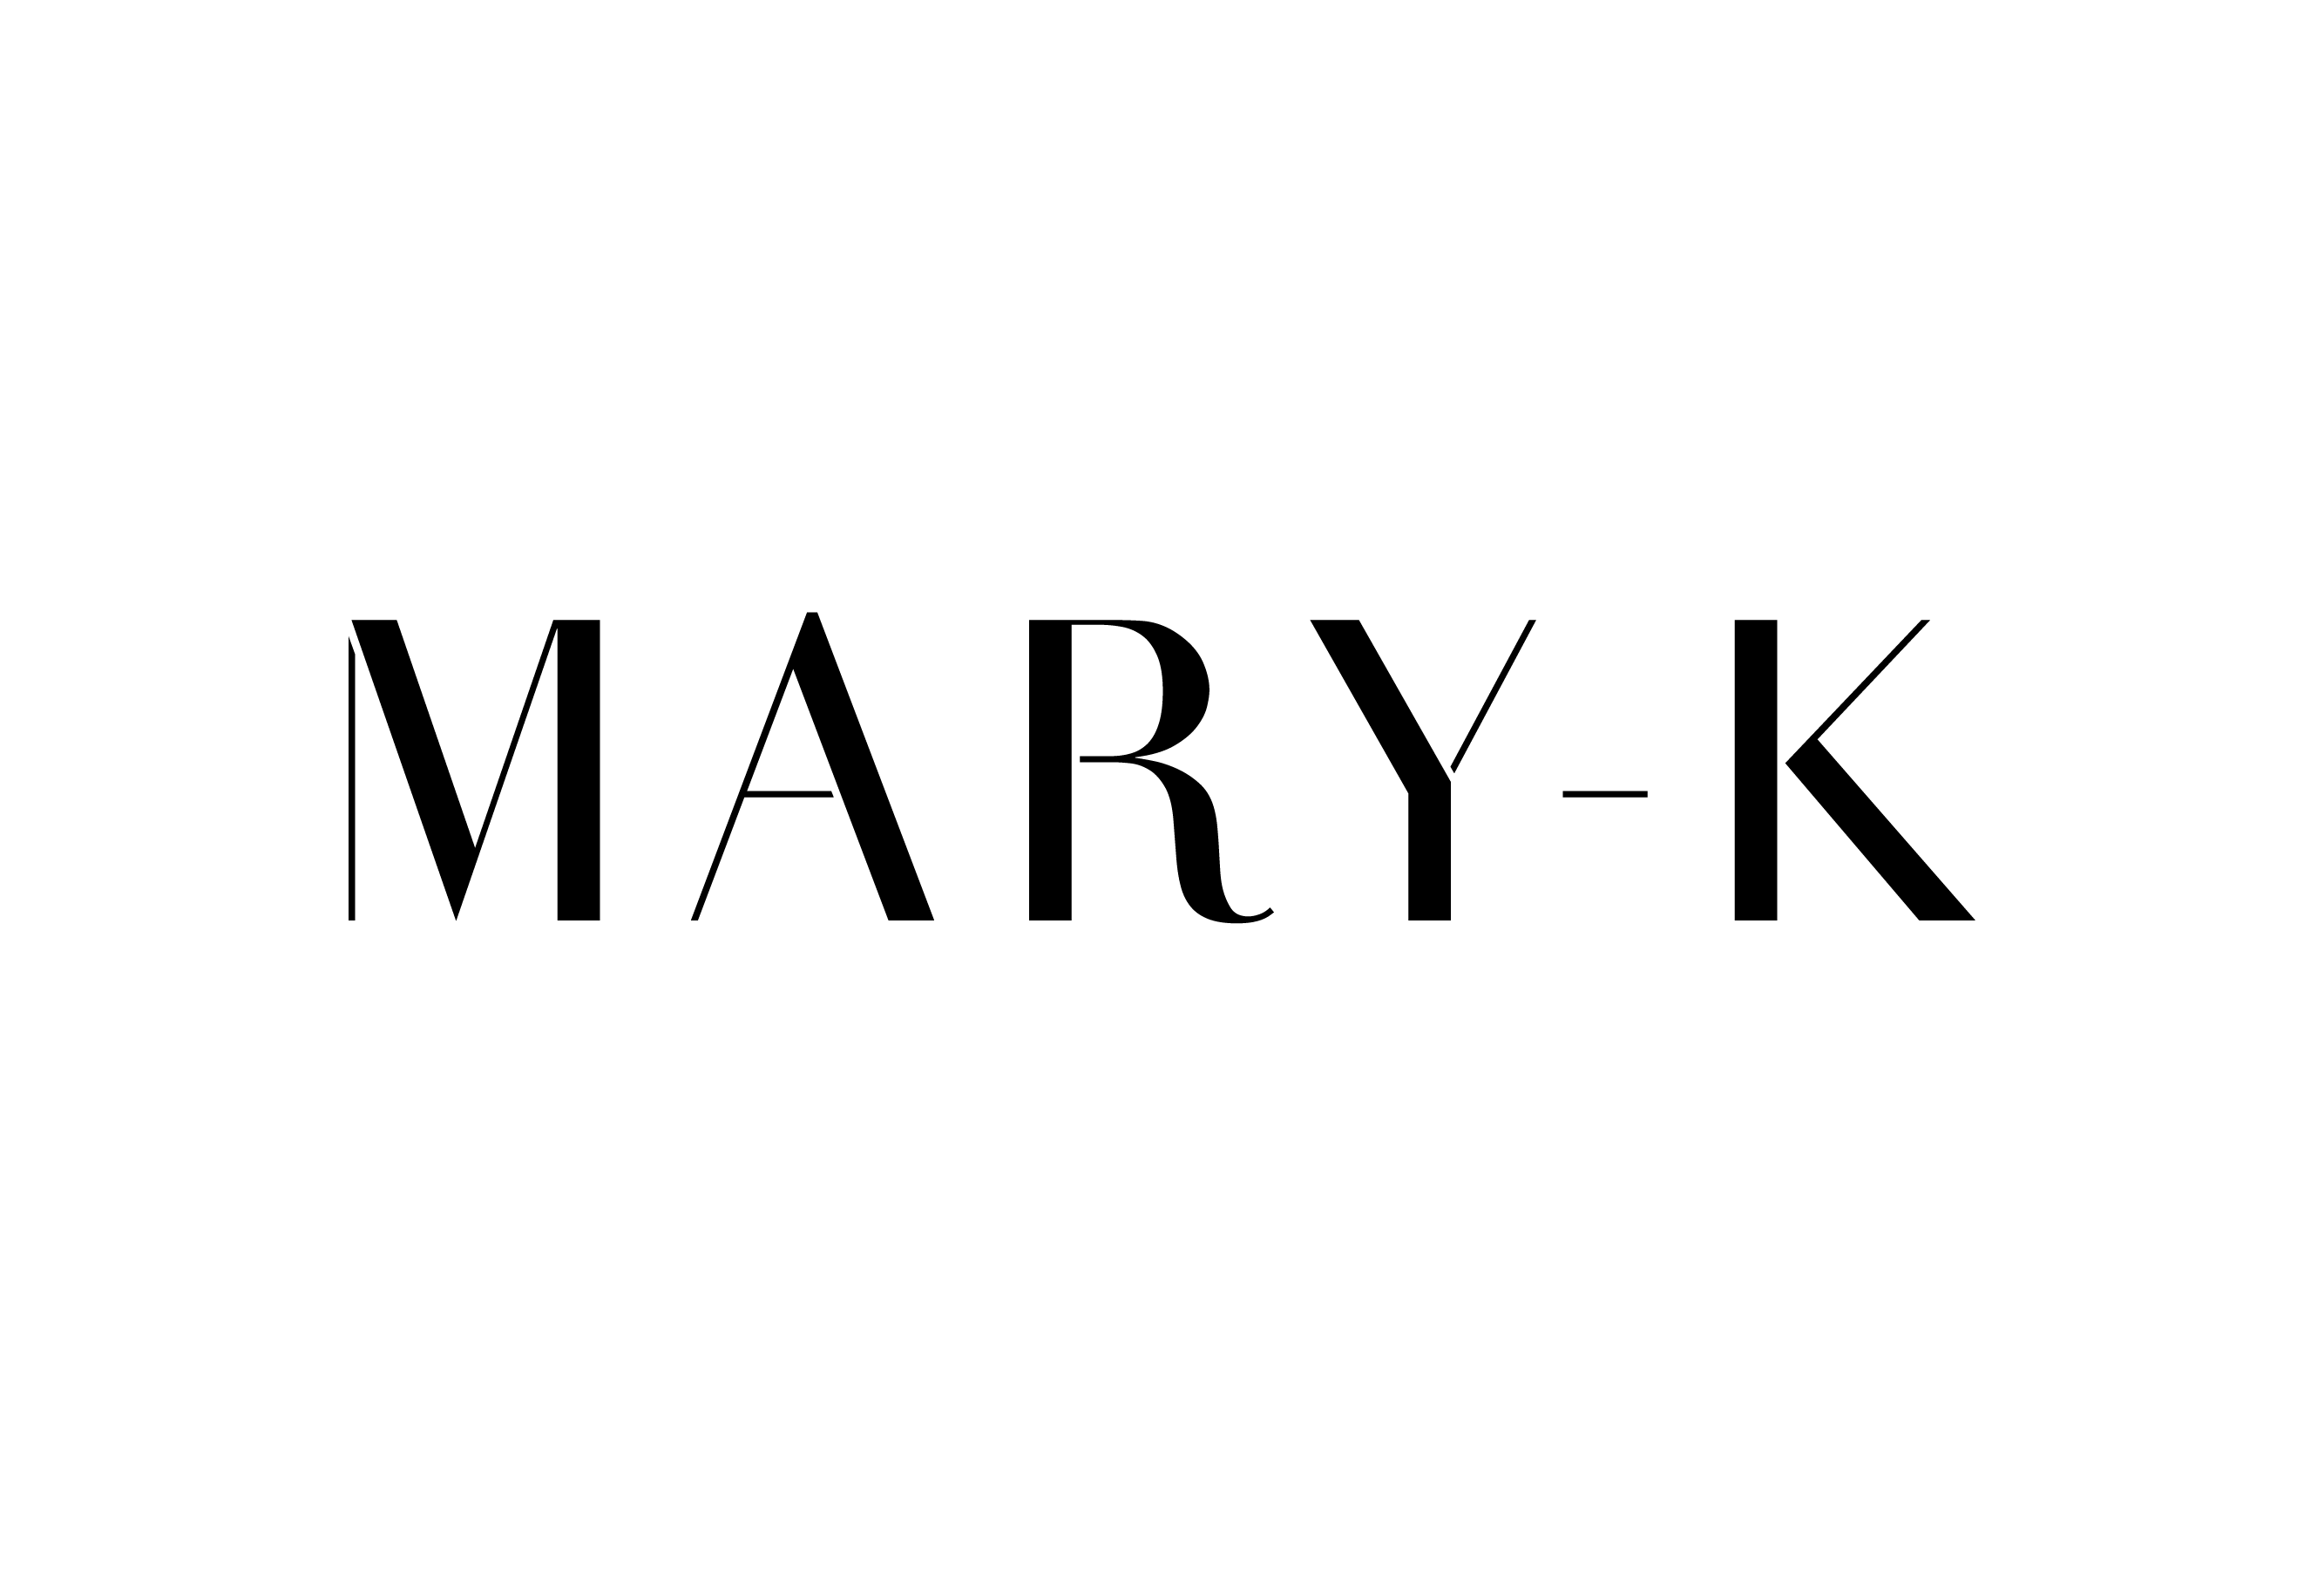 Cover image: Mary-K Jewellery (2012)